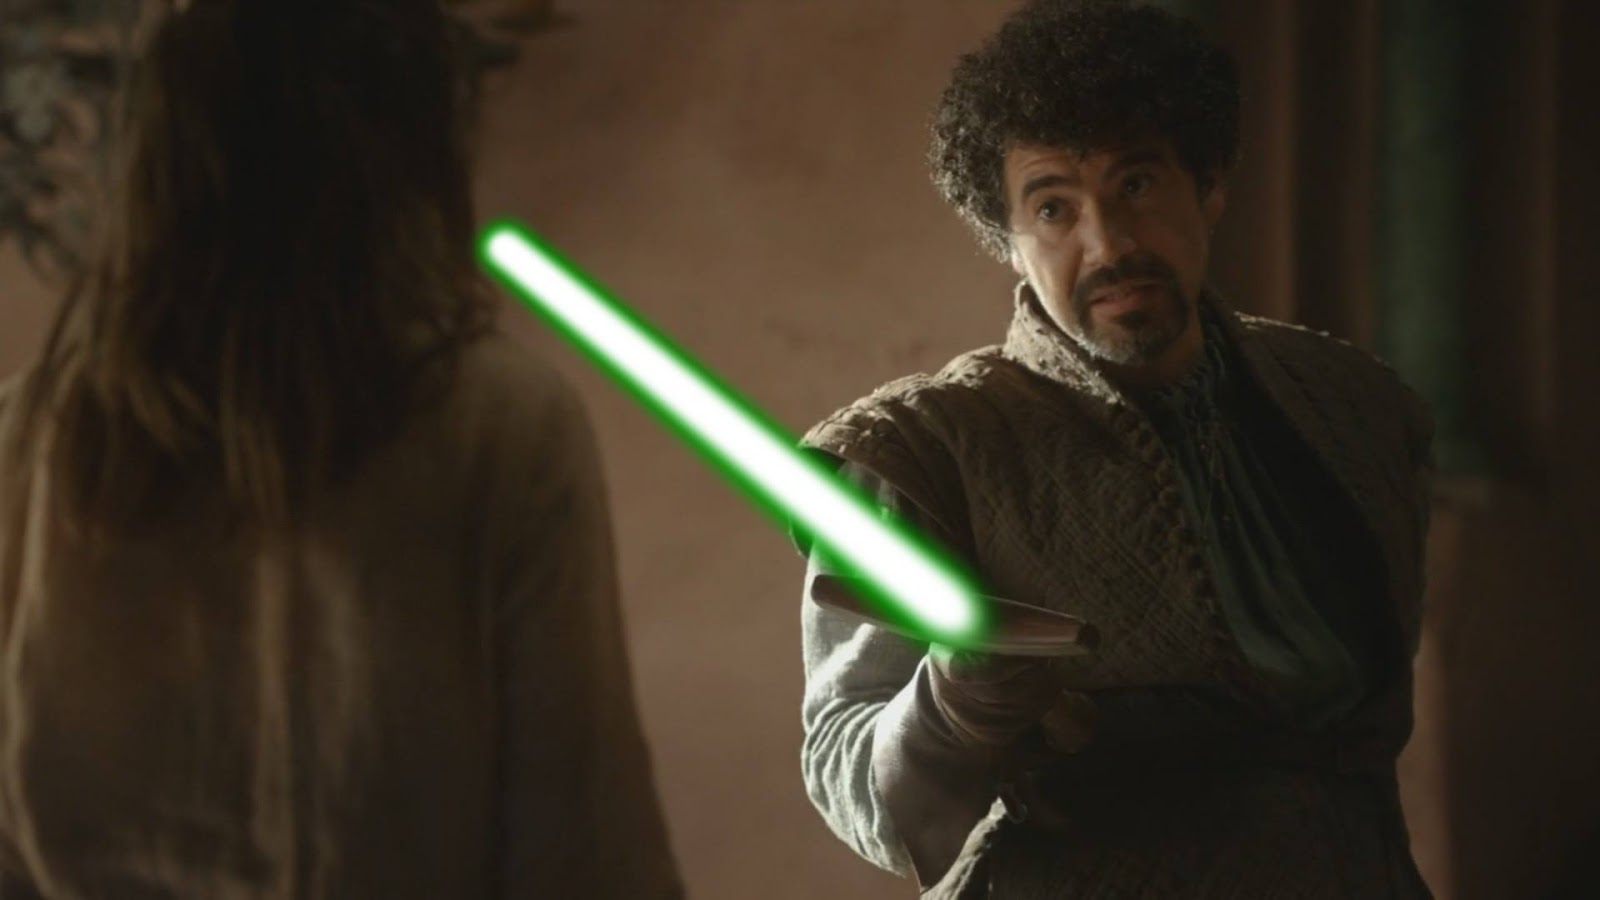 miltos yerolemou game of thrones